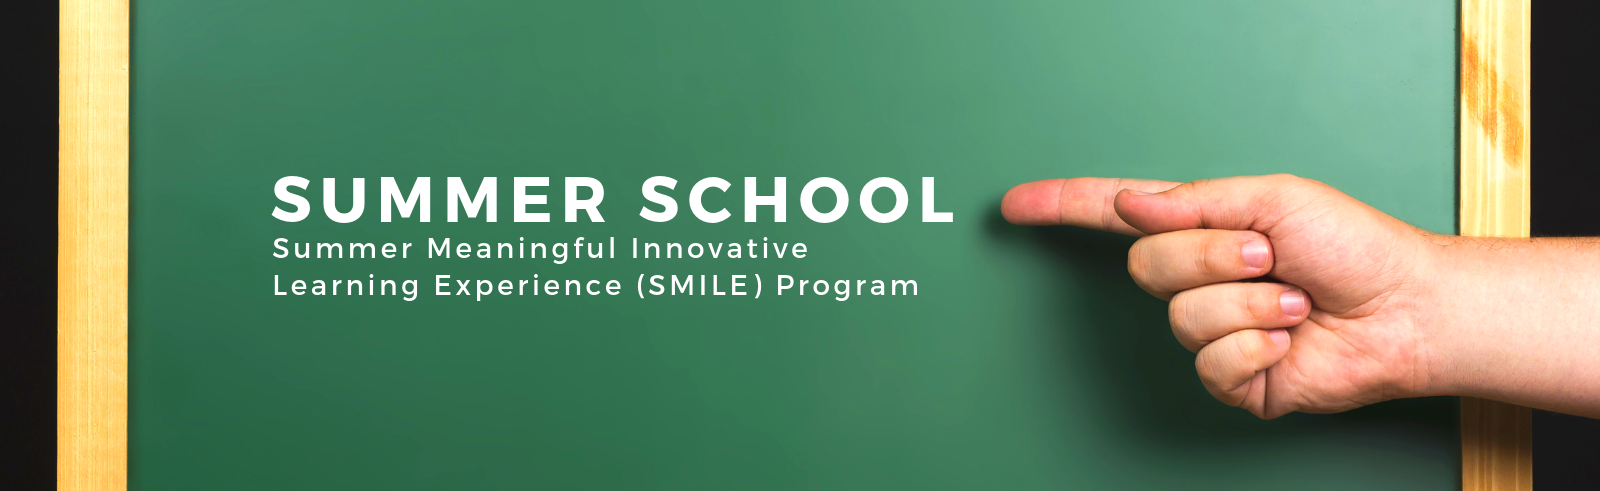 Summer Meaningful Innovative Learning Experience Page Banner